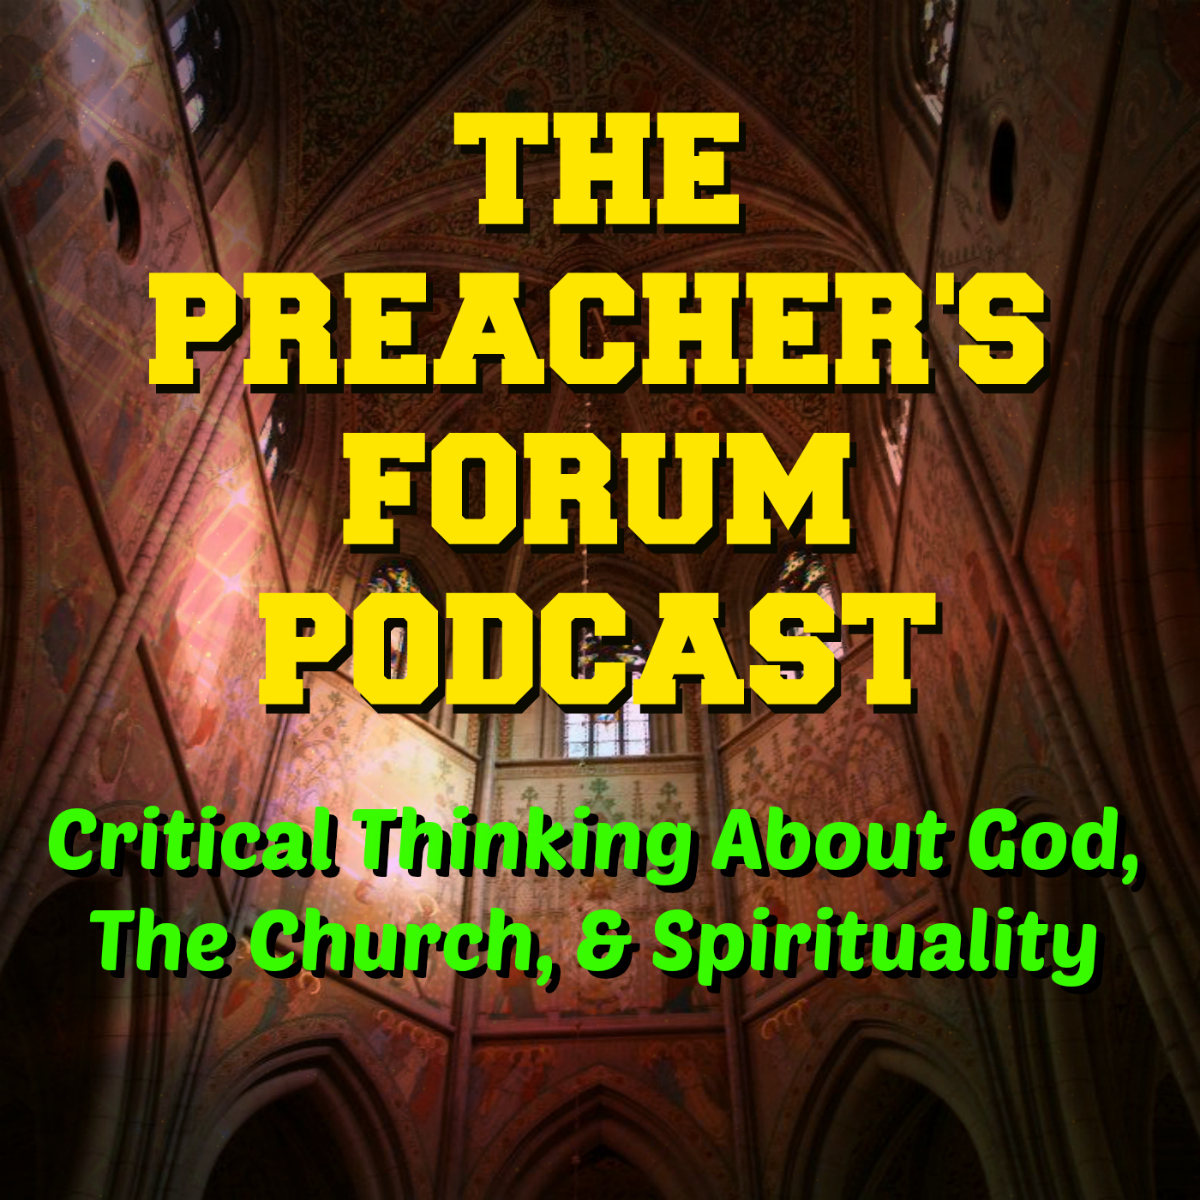 The Preacher's Forum Podcast